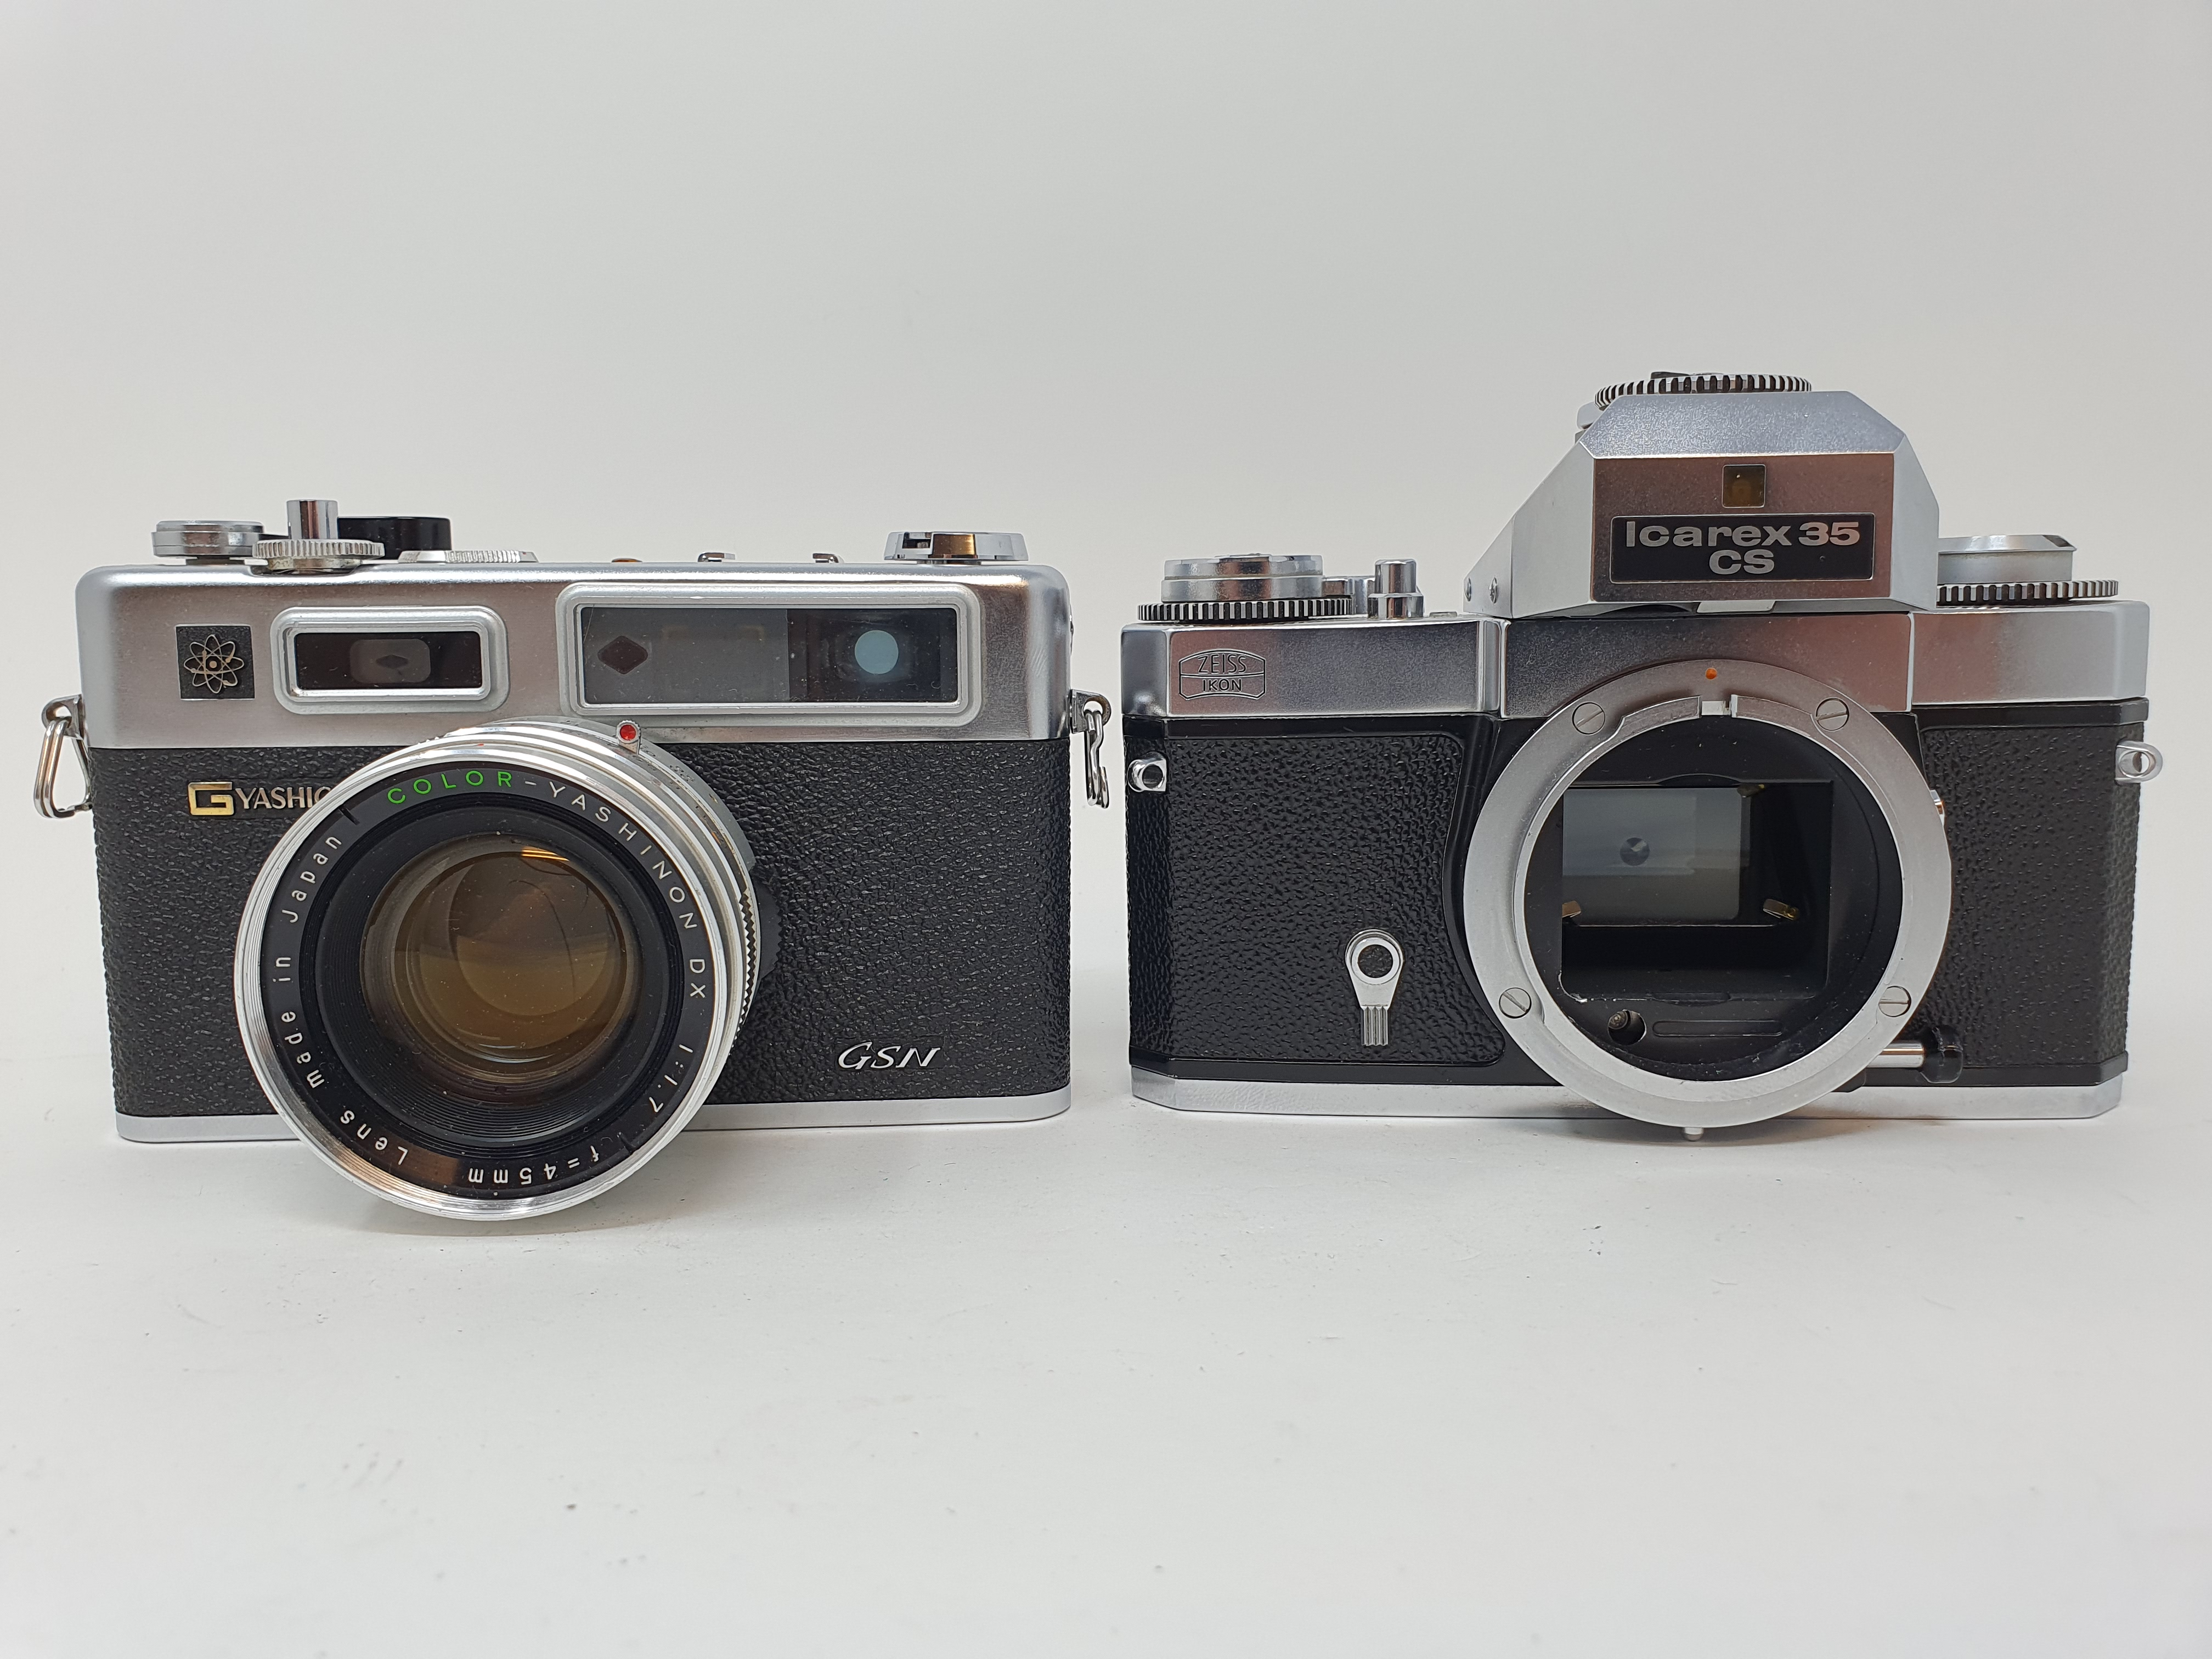 A Zeiss Ikon voigtlander camera and a Yashica GSN Electro 35 camera (2) Provenance: Part of a vast